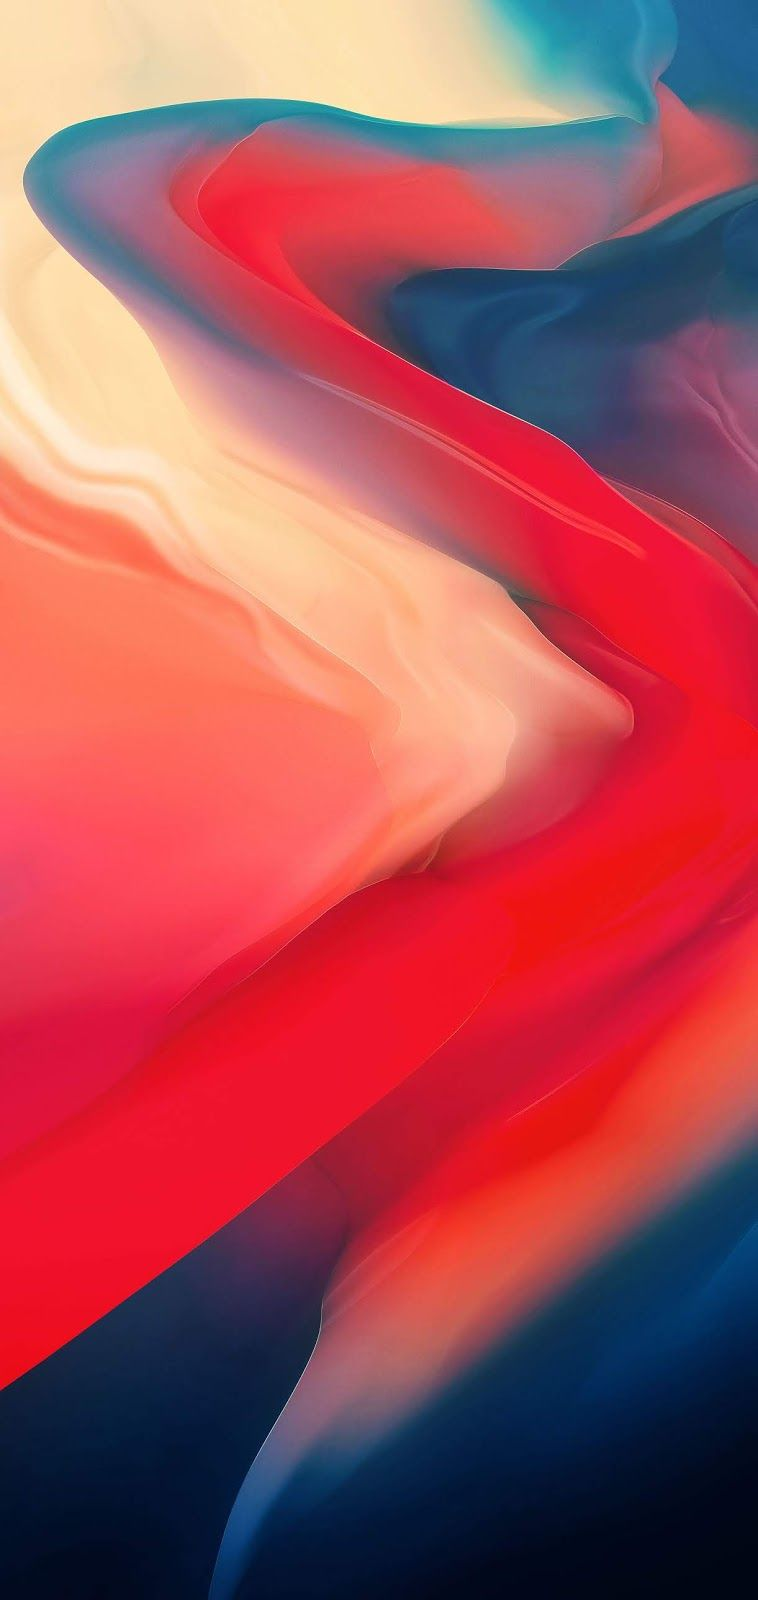 Oneplus 6 Red Edition Stock Wallpapers 4k Wallpaper Iphone Android Abstract Iphone Wallpaper Apple Wallpaper Oneplus Wallpapers